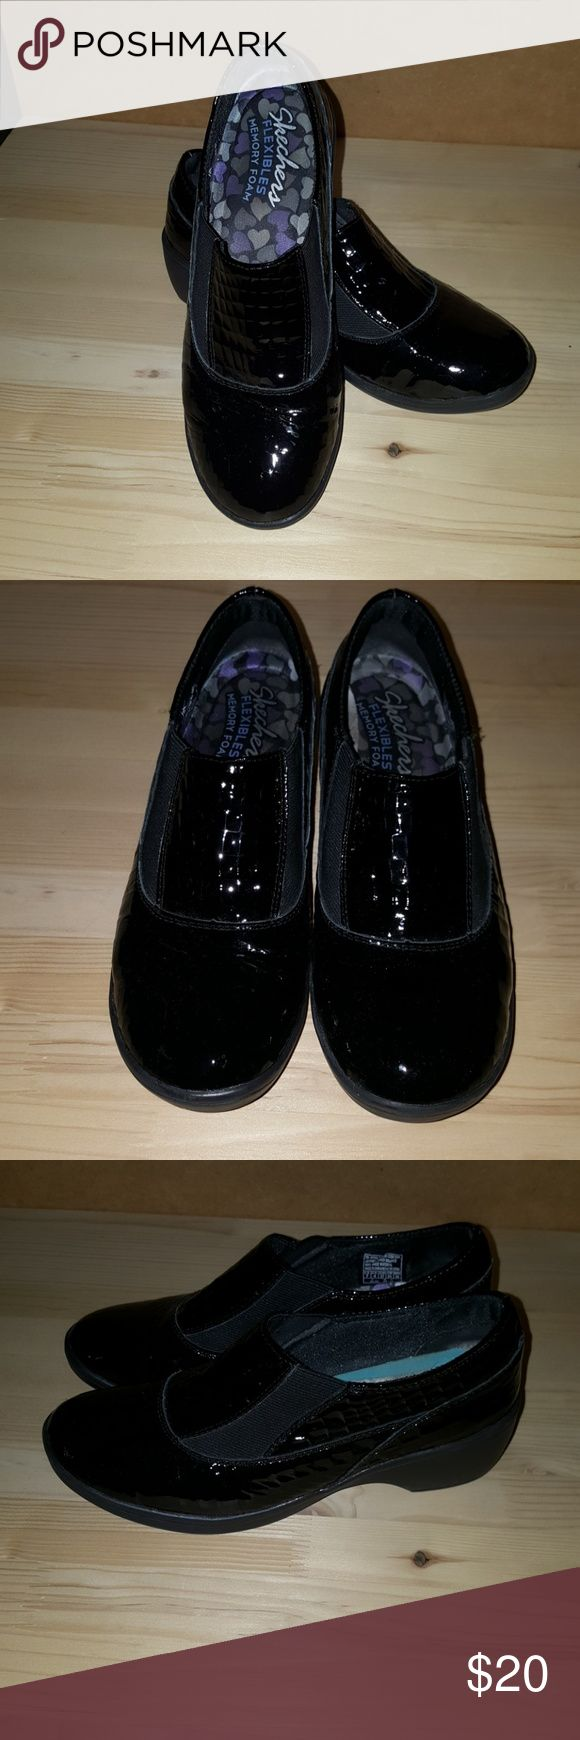 SKECHERS Black Patent Leather These adorable Skechers are super comfy, but I no longer reach for them,  so my loss is your gain.  They are in awesome shape, and ready to make someone very happy! Skechers Shoes Wedges